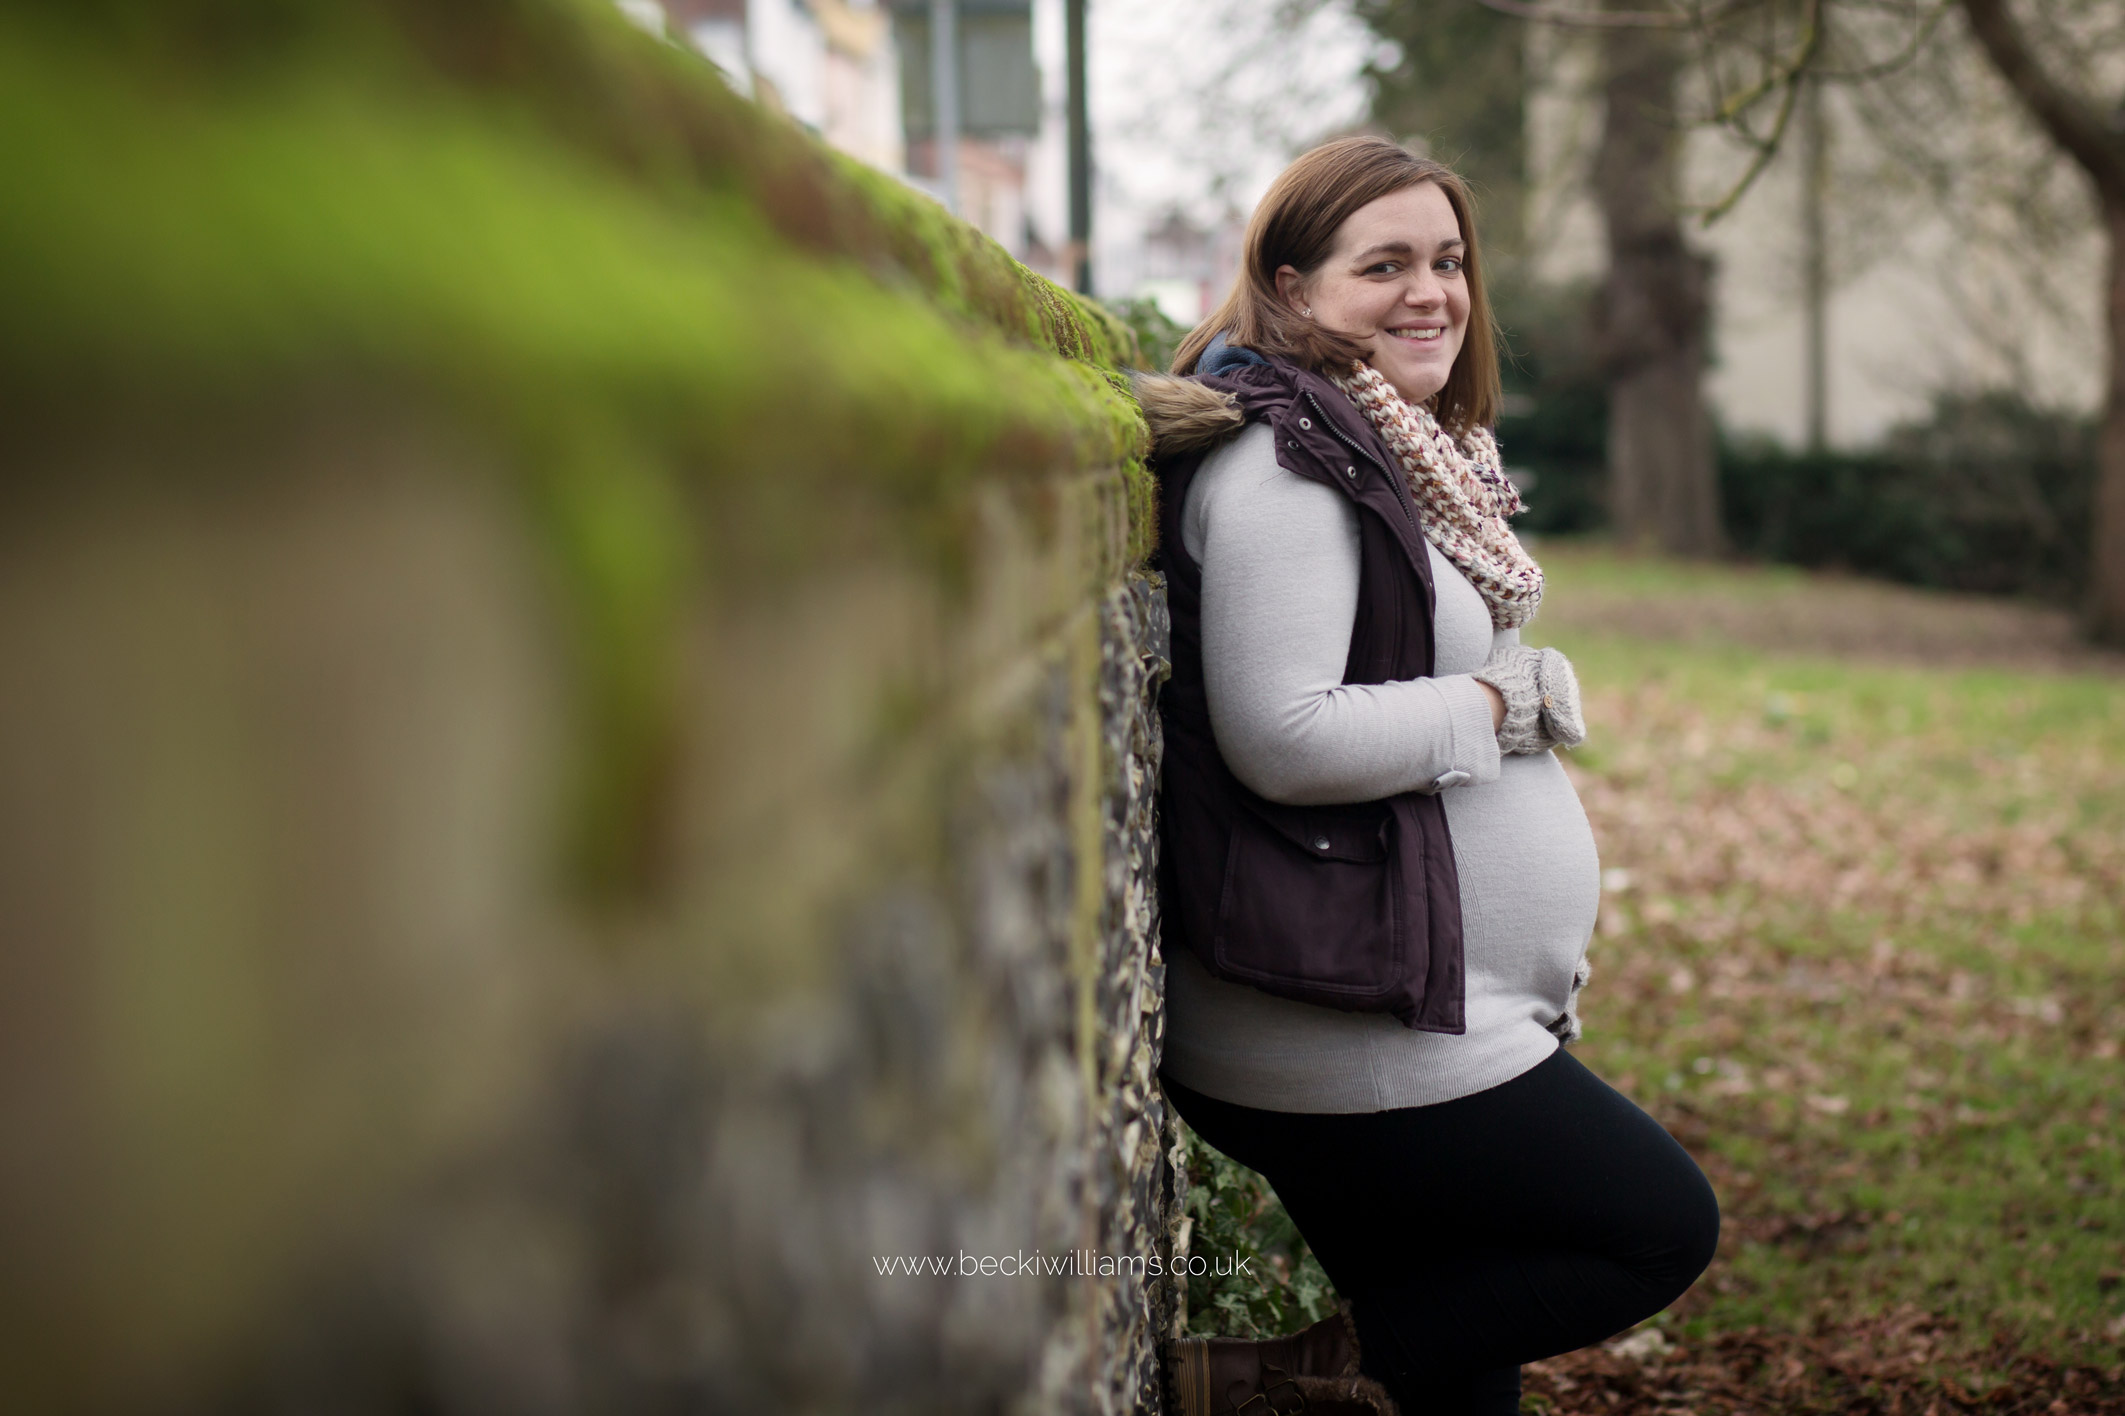 maternity-photo-shoot-hemel-hempstead-gadebridge-park-wall-relaxed.jpg